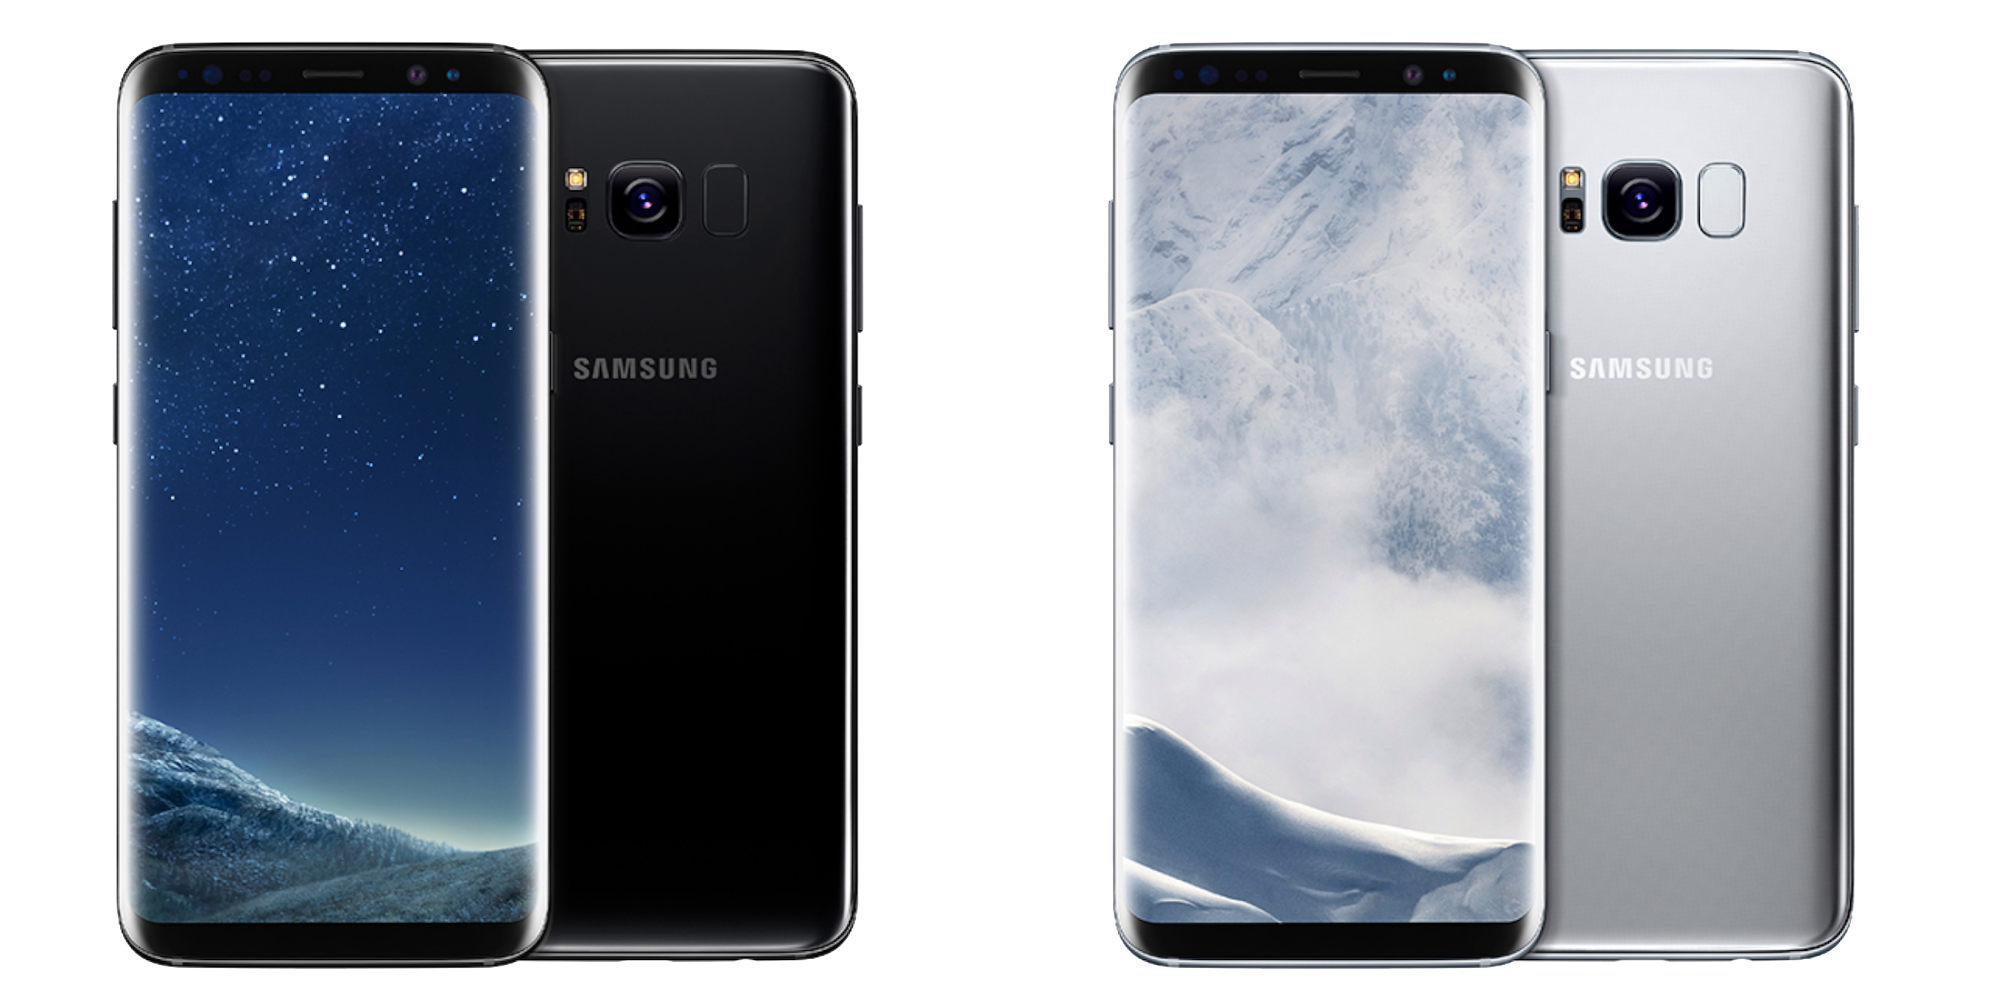 Galaxy S8 Plus Mobile Png Transparent Background.